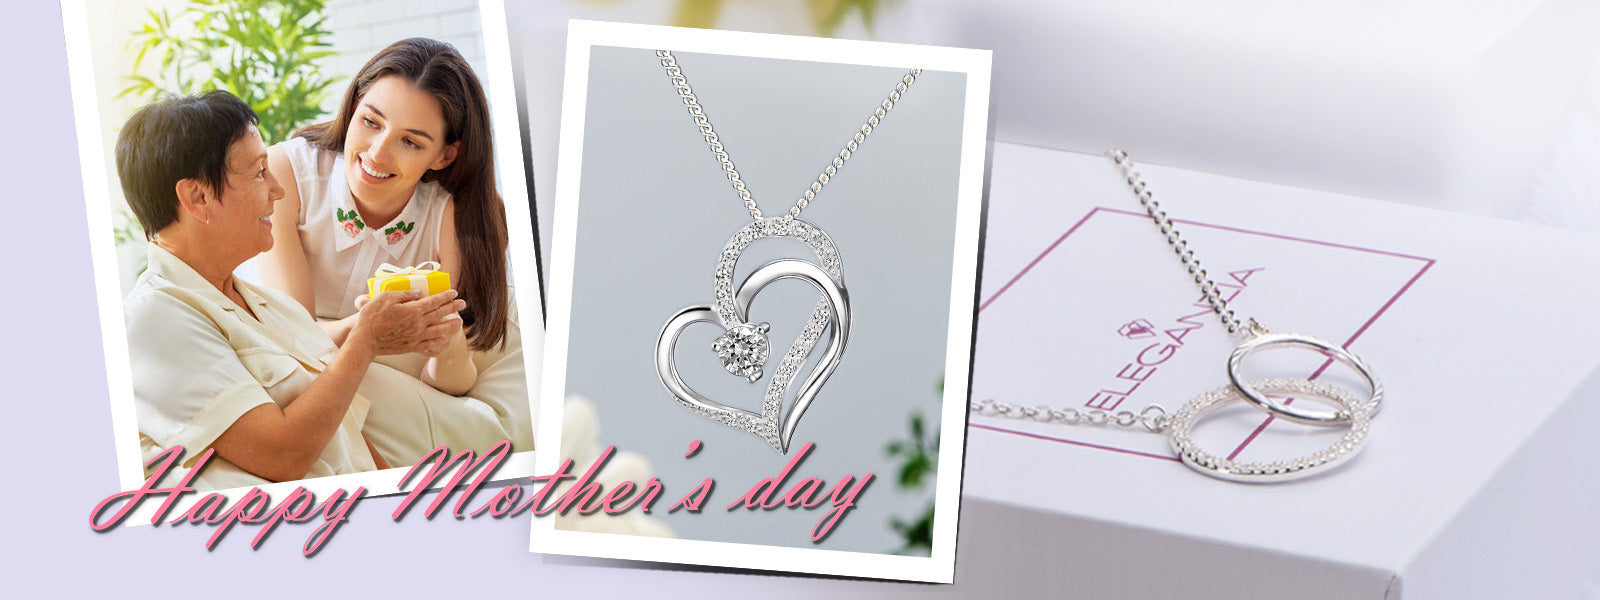 Eleganzia Jewelry Mother's Day Gifts Idea